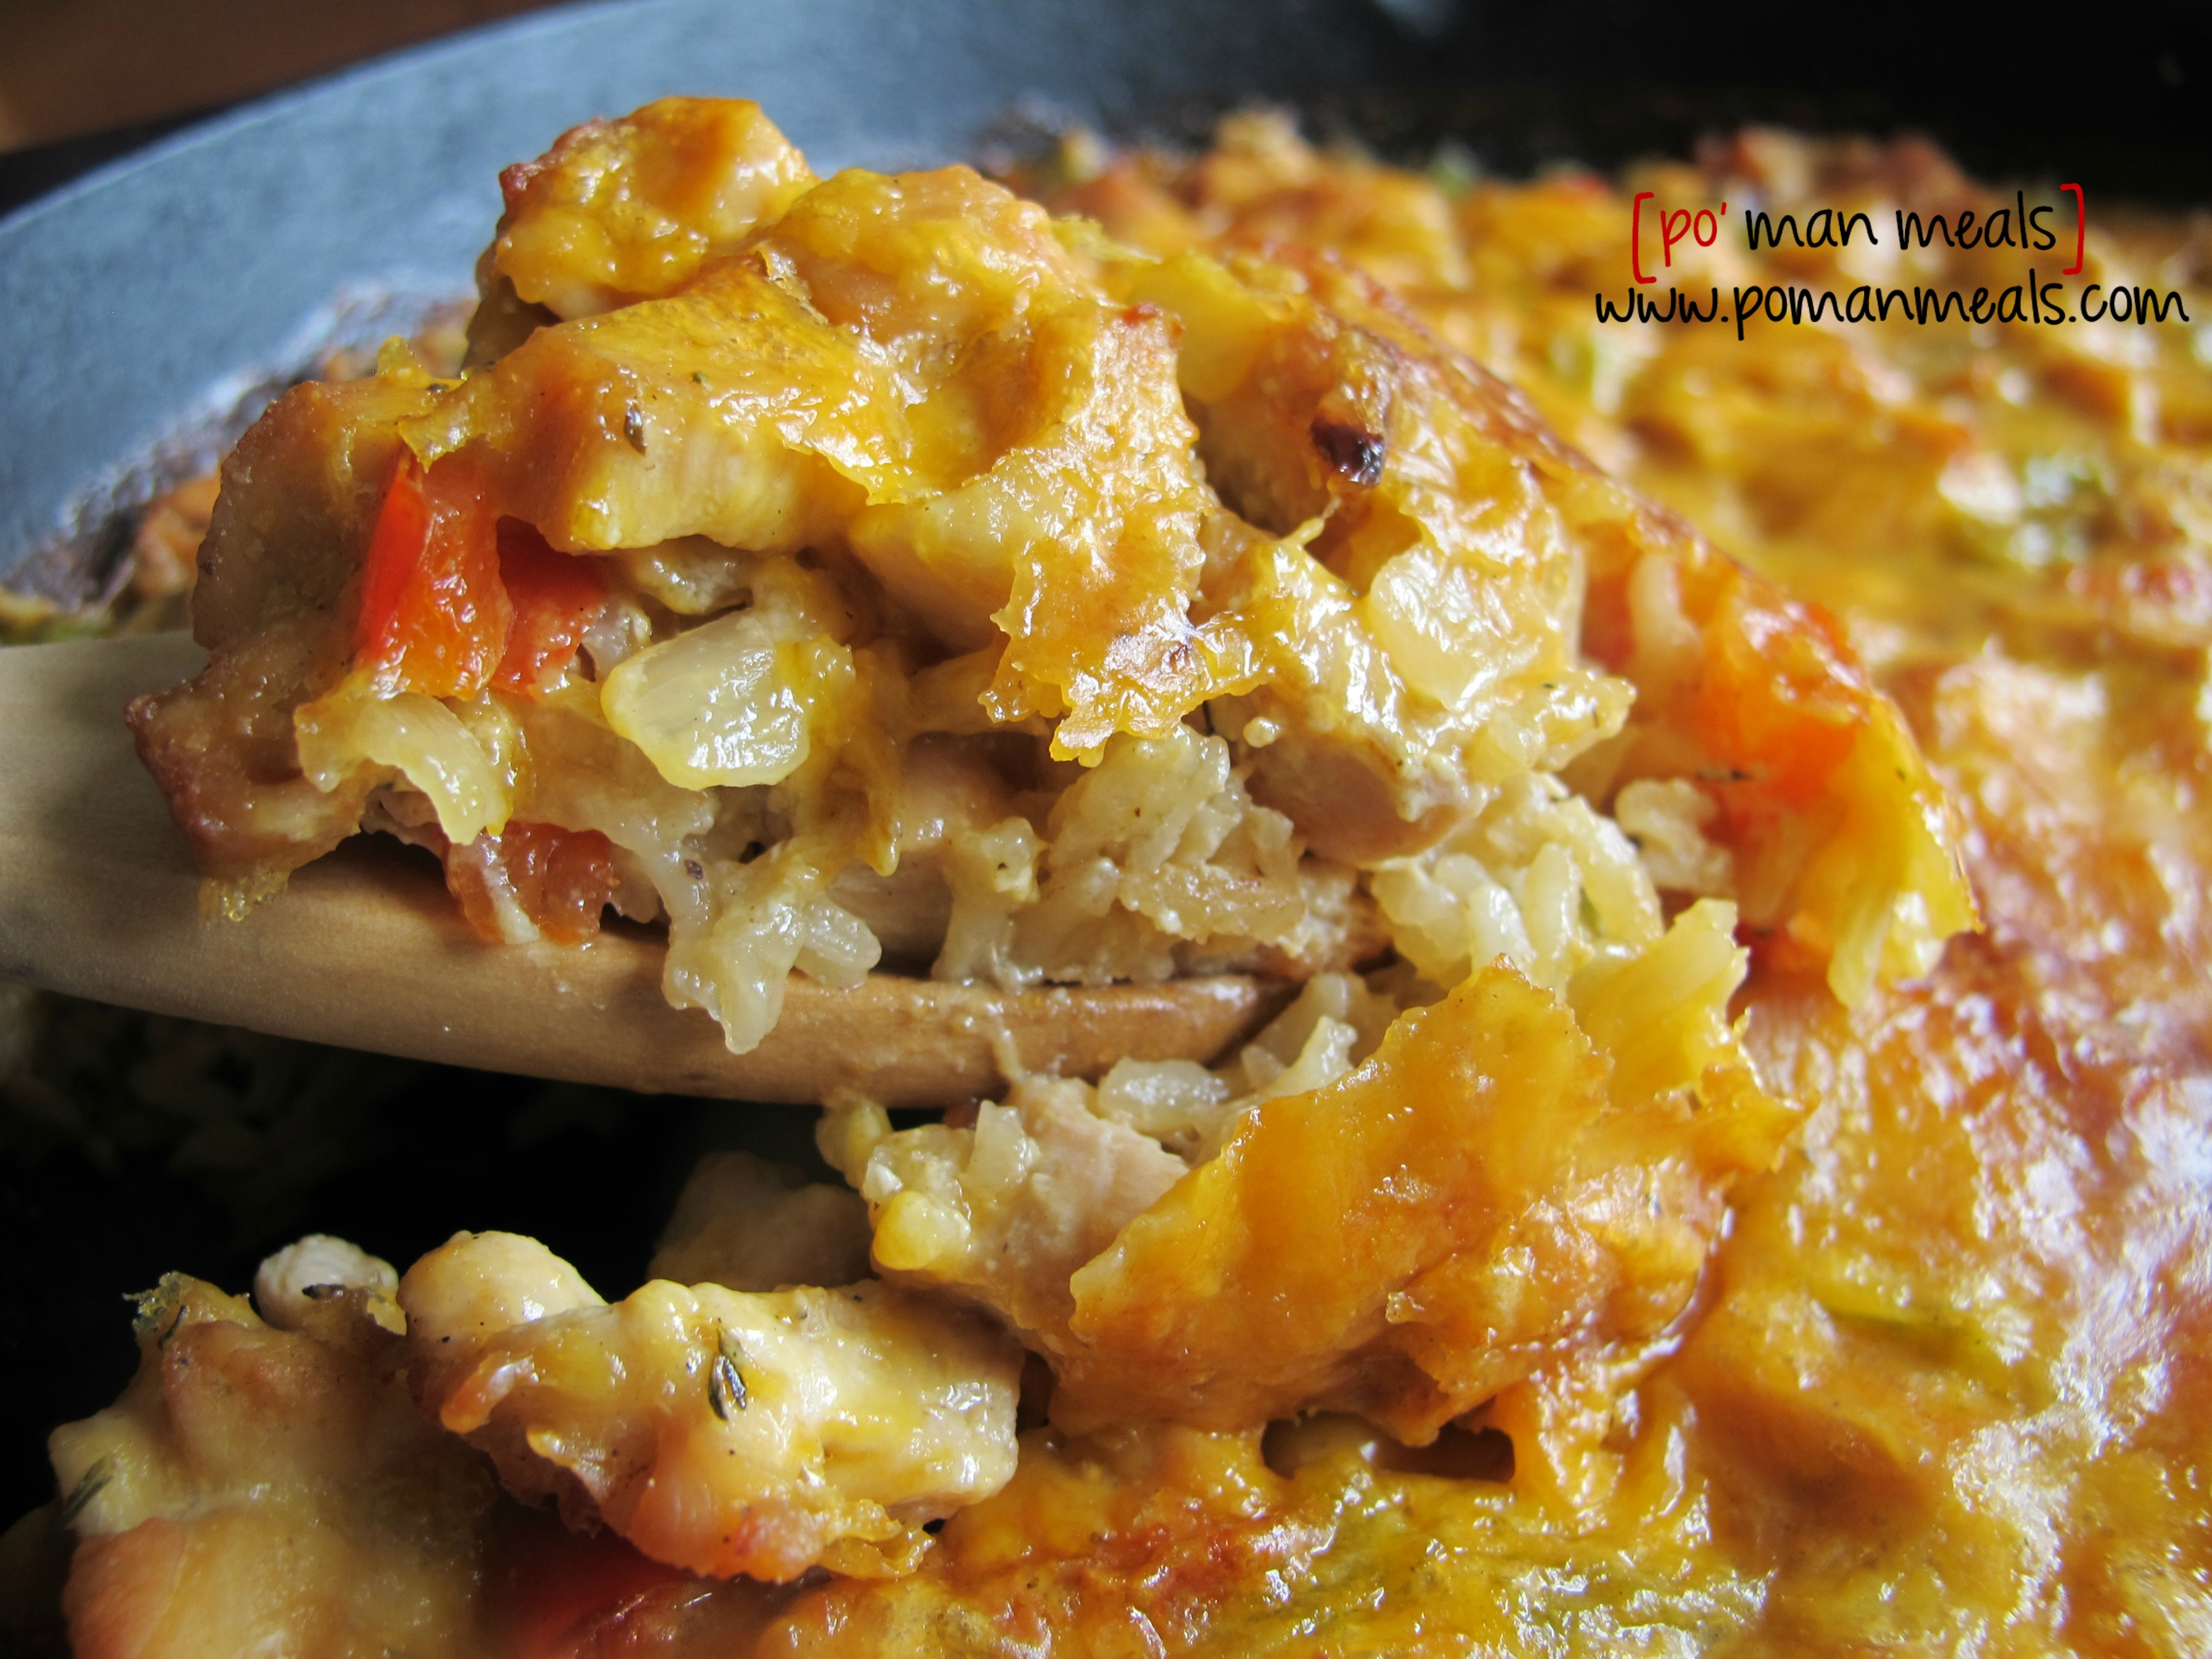 spoon-chicken-and-rice-wm.jpg